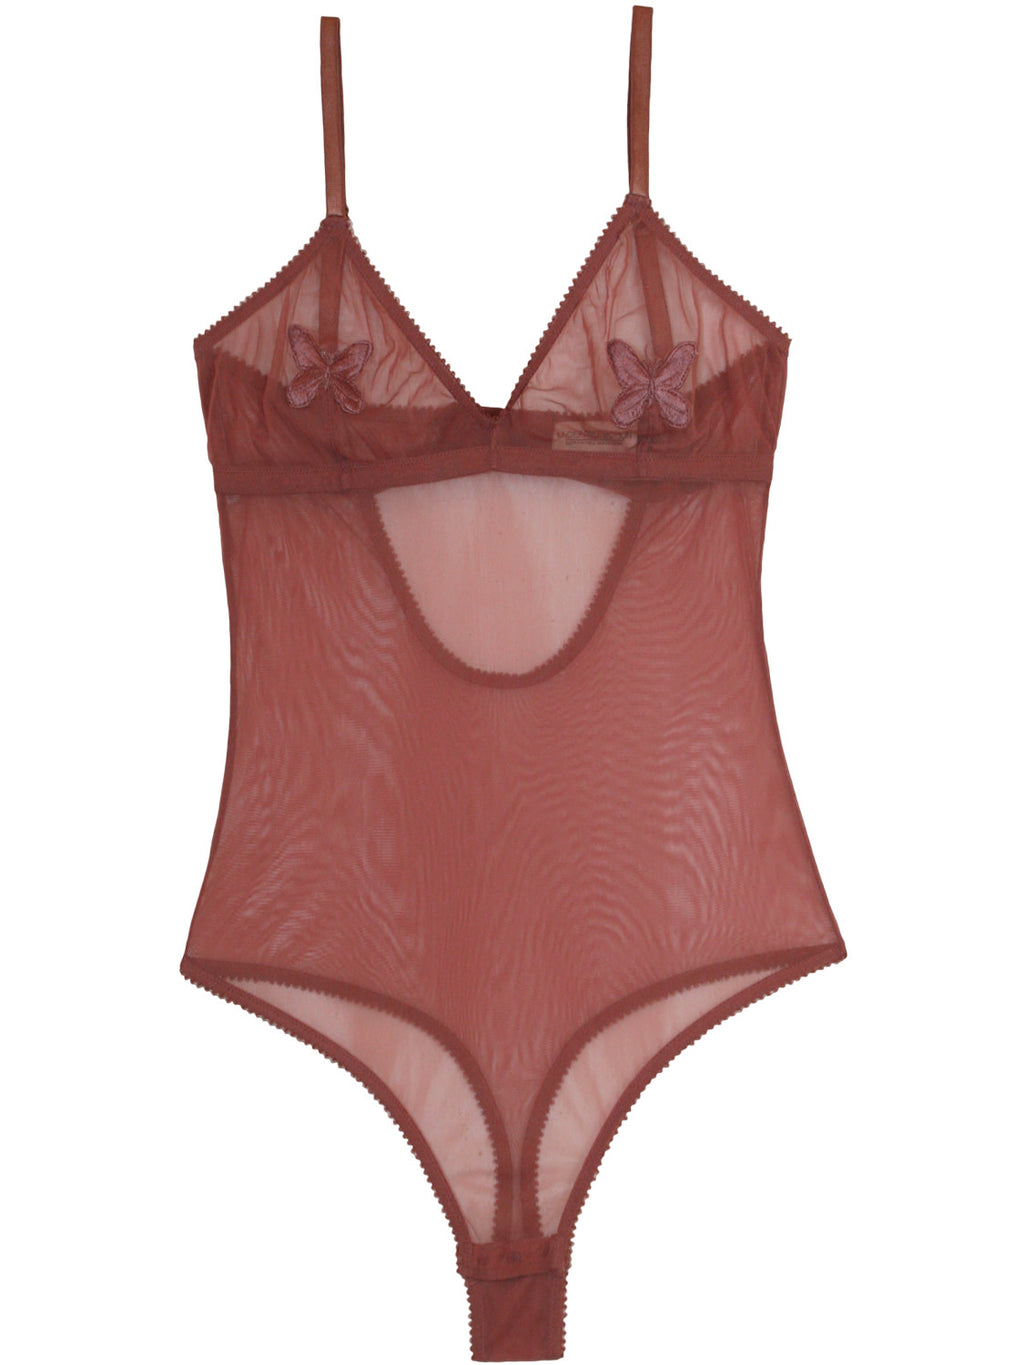 Betty Bodysuit by Underprotection | Finding Rosie lingerie shop Australia